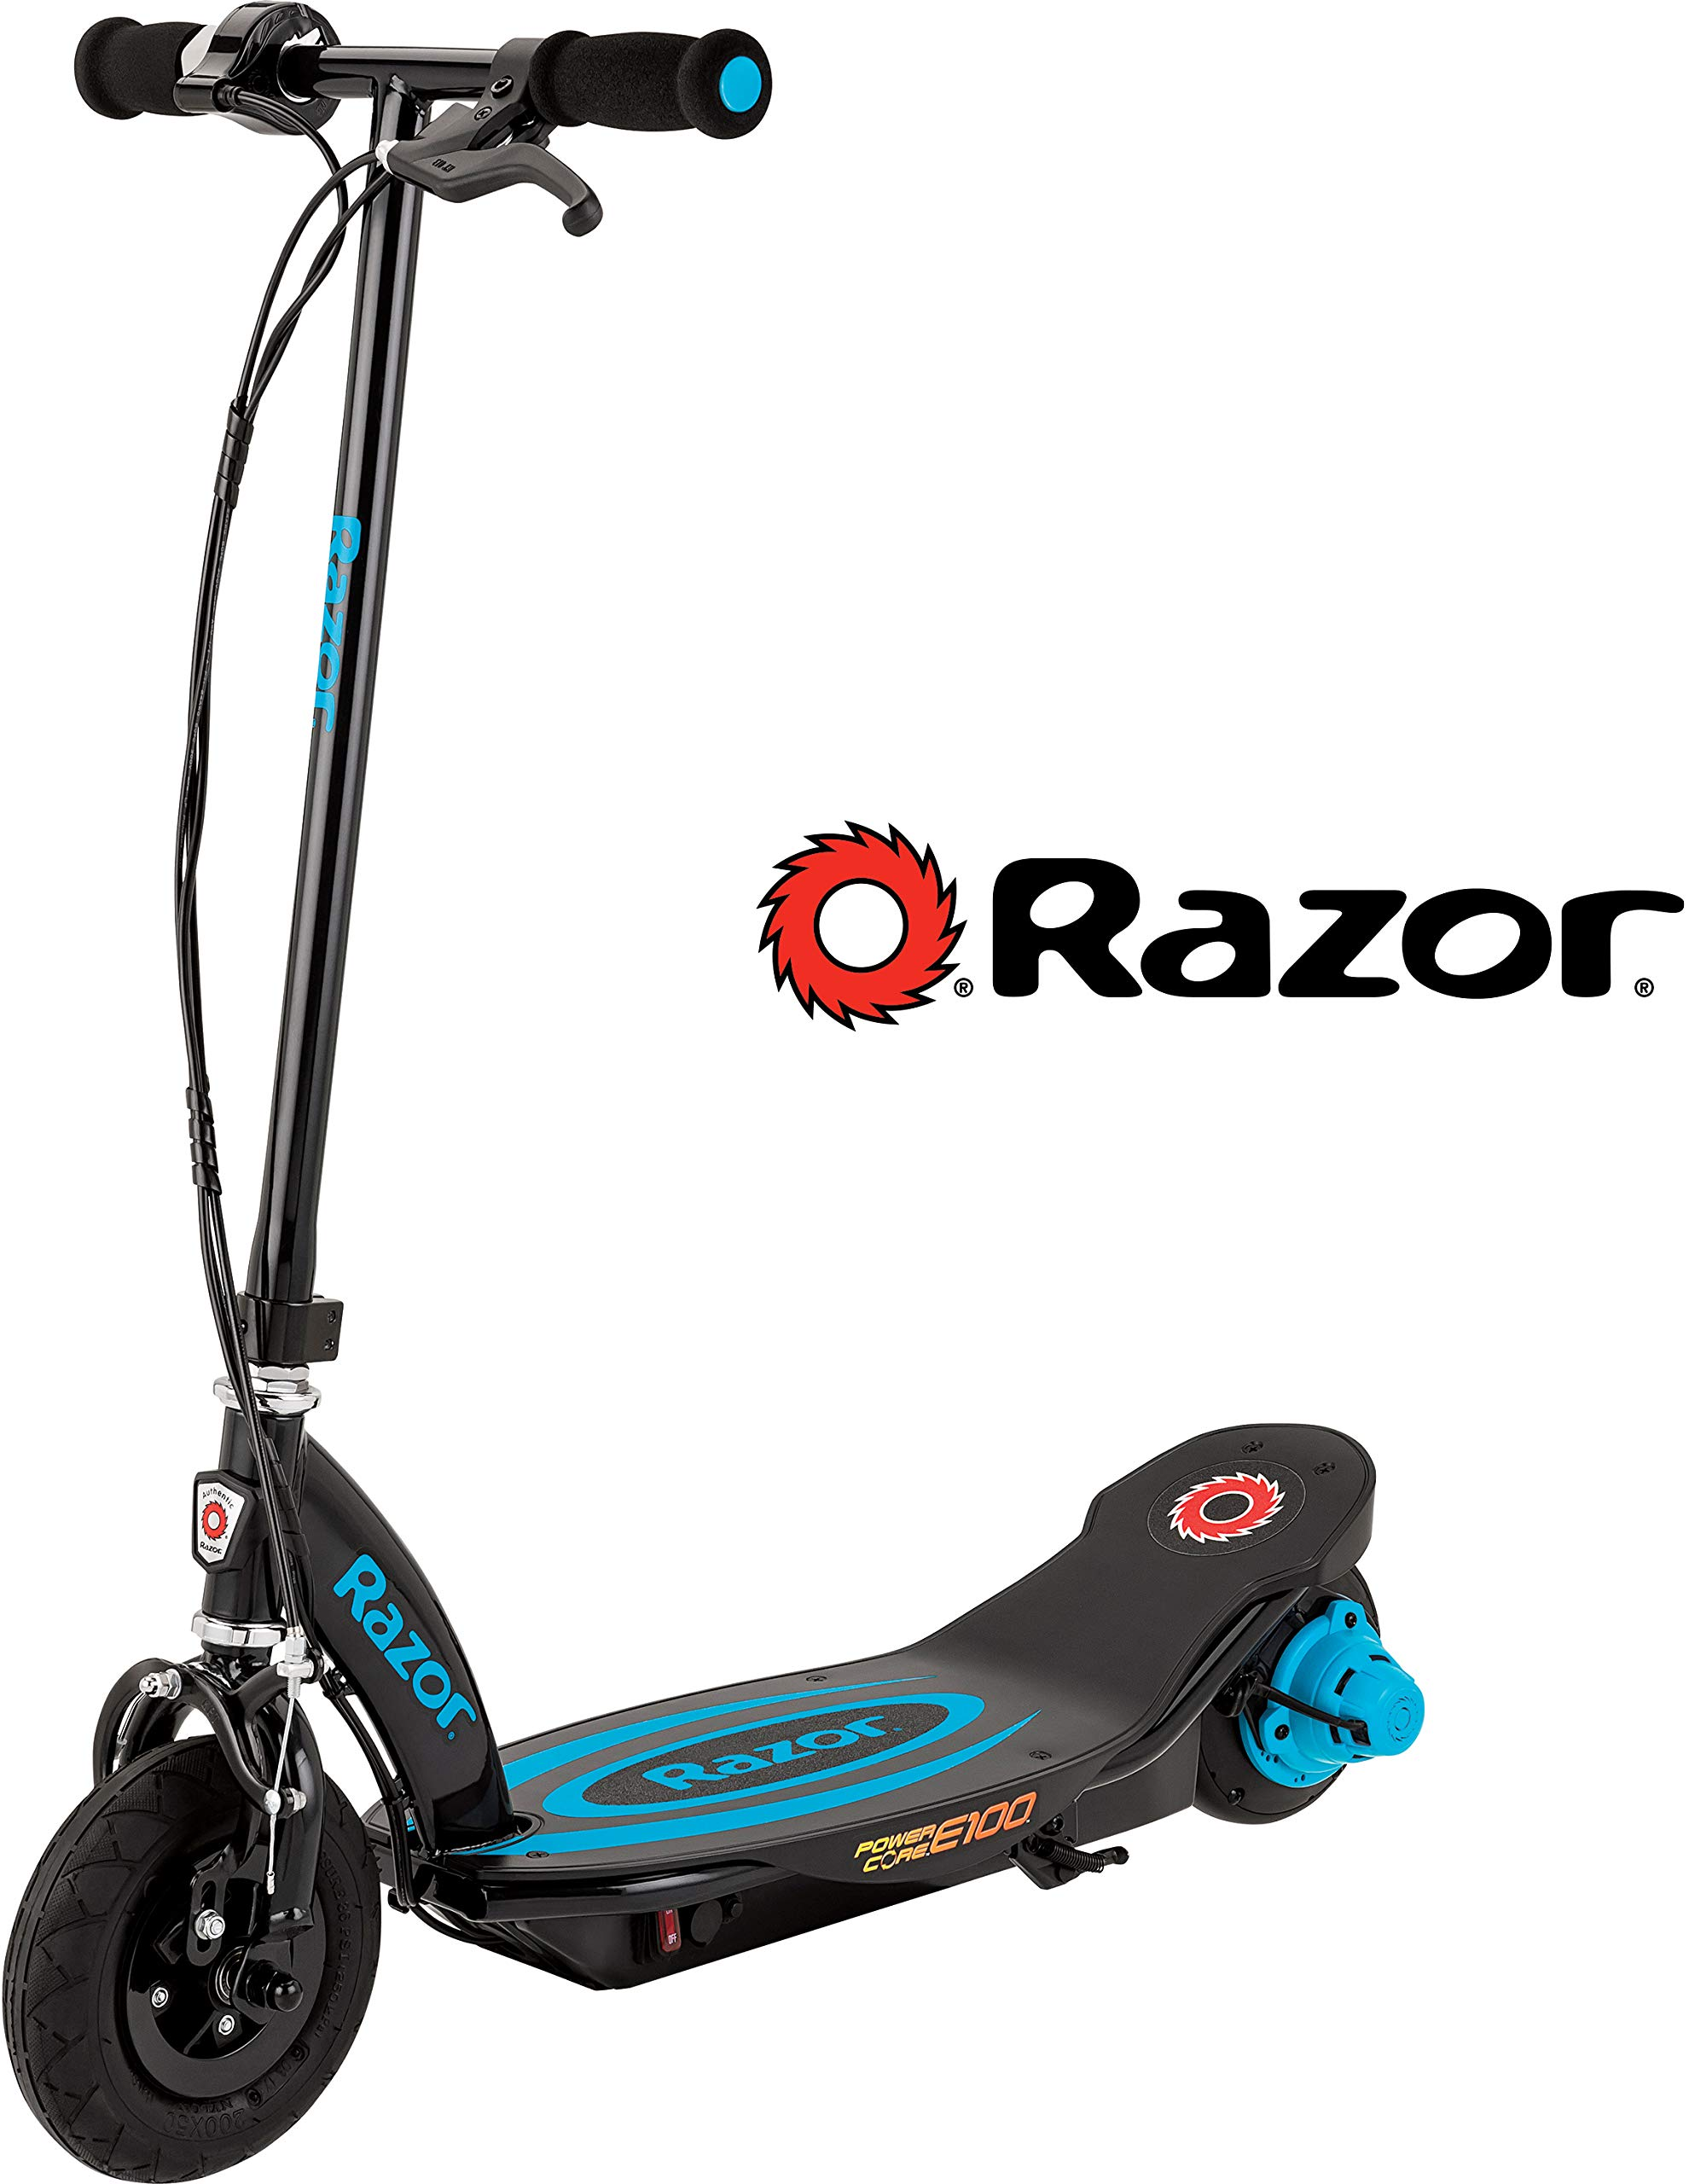 Razor Power Core E100 Electric Scooter - Blue by Razor